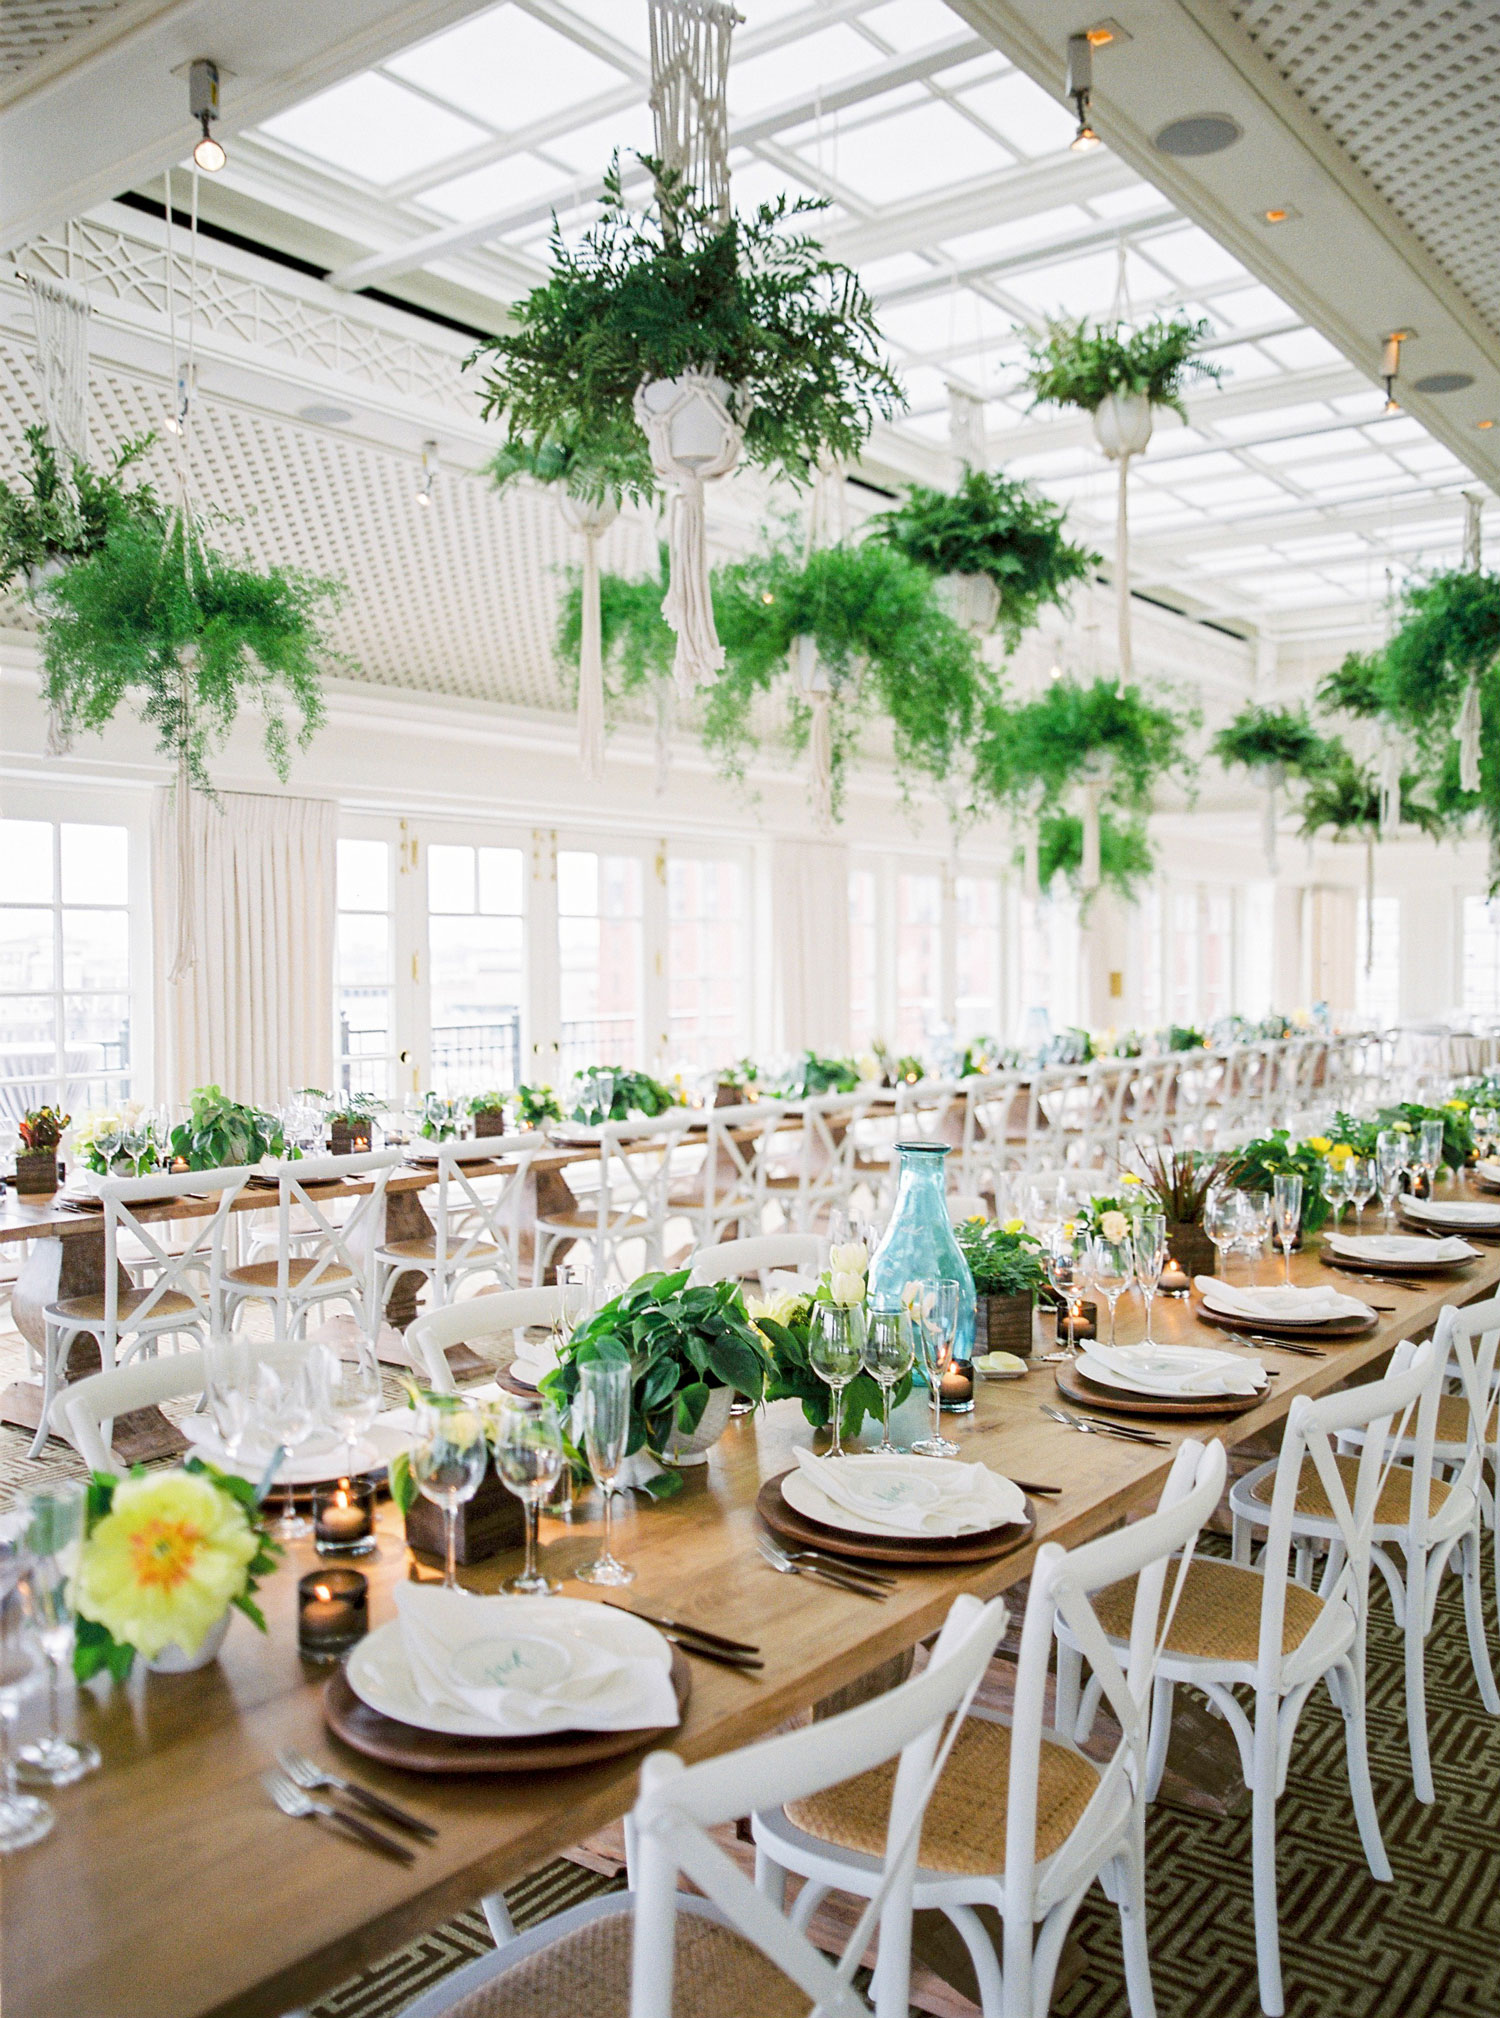 Light wood wedding reception table ideas no linens